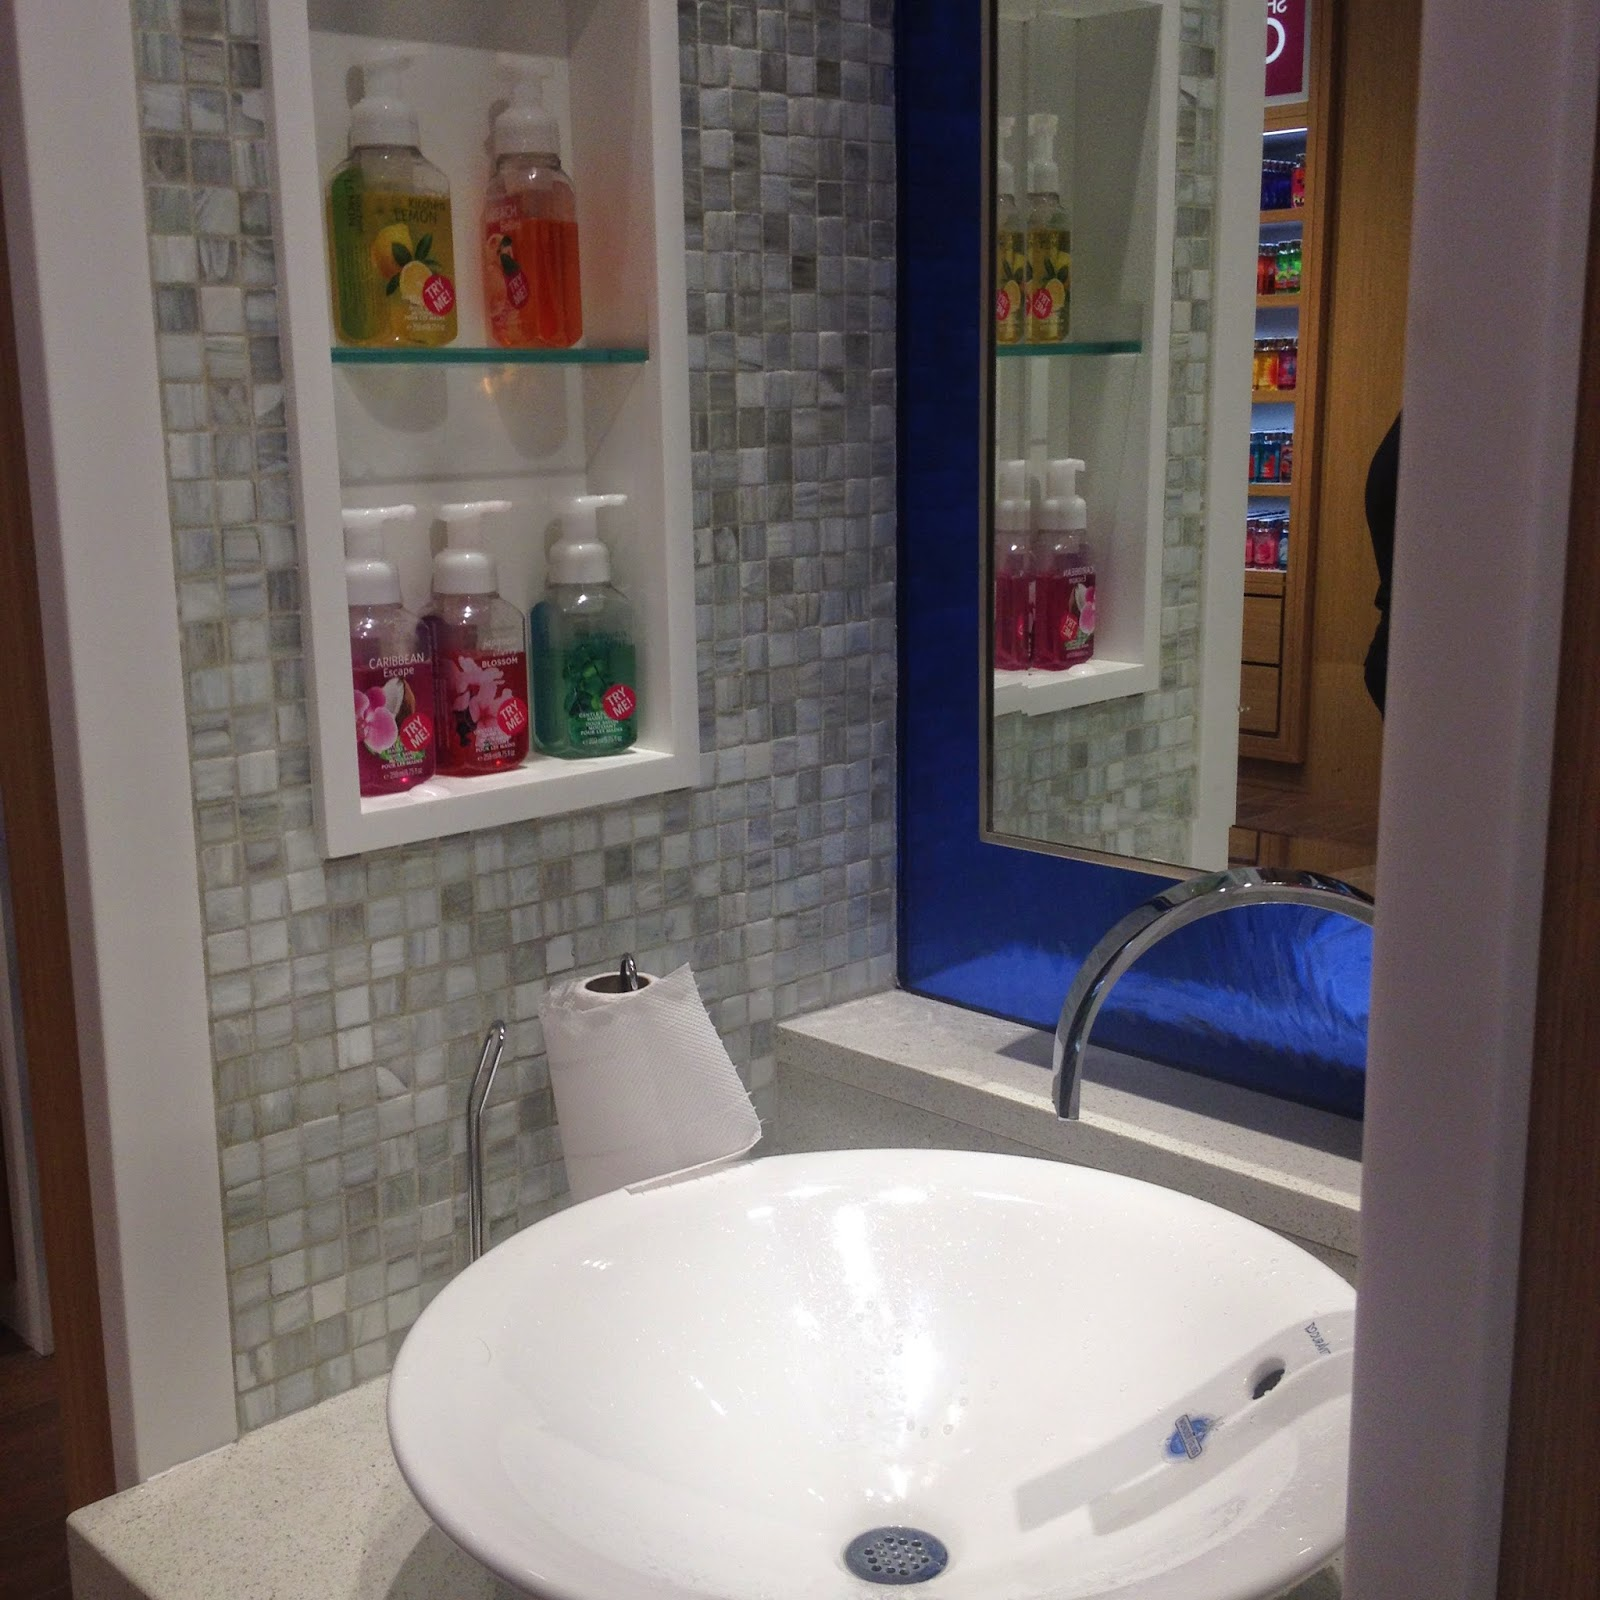 sink with various hand soaps